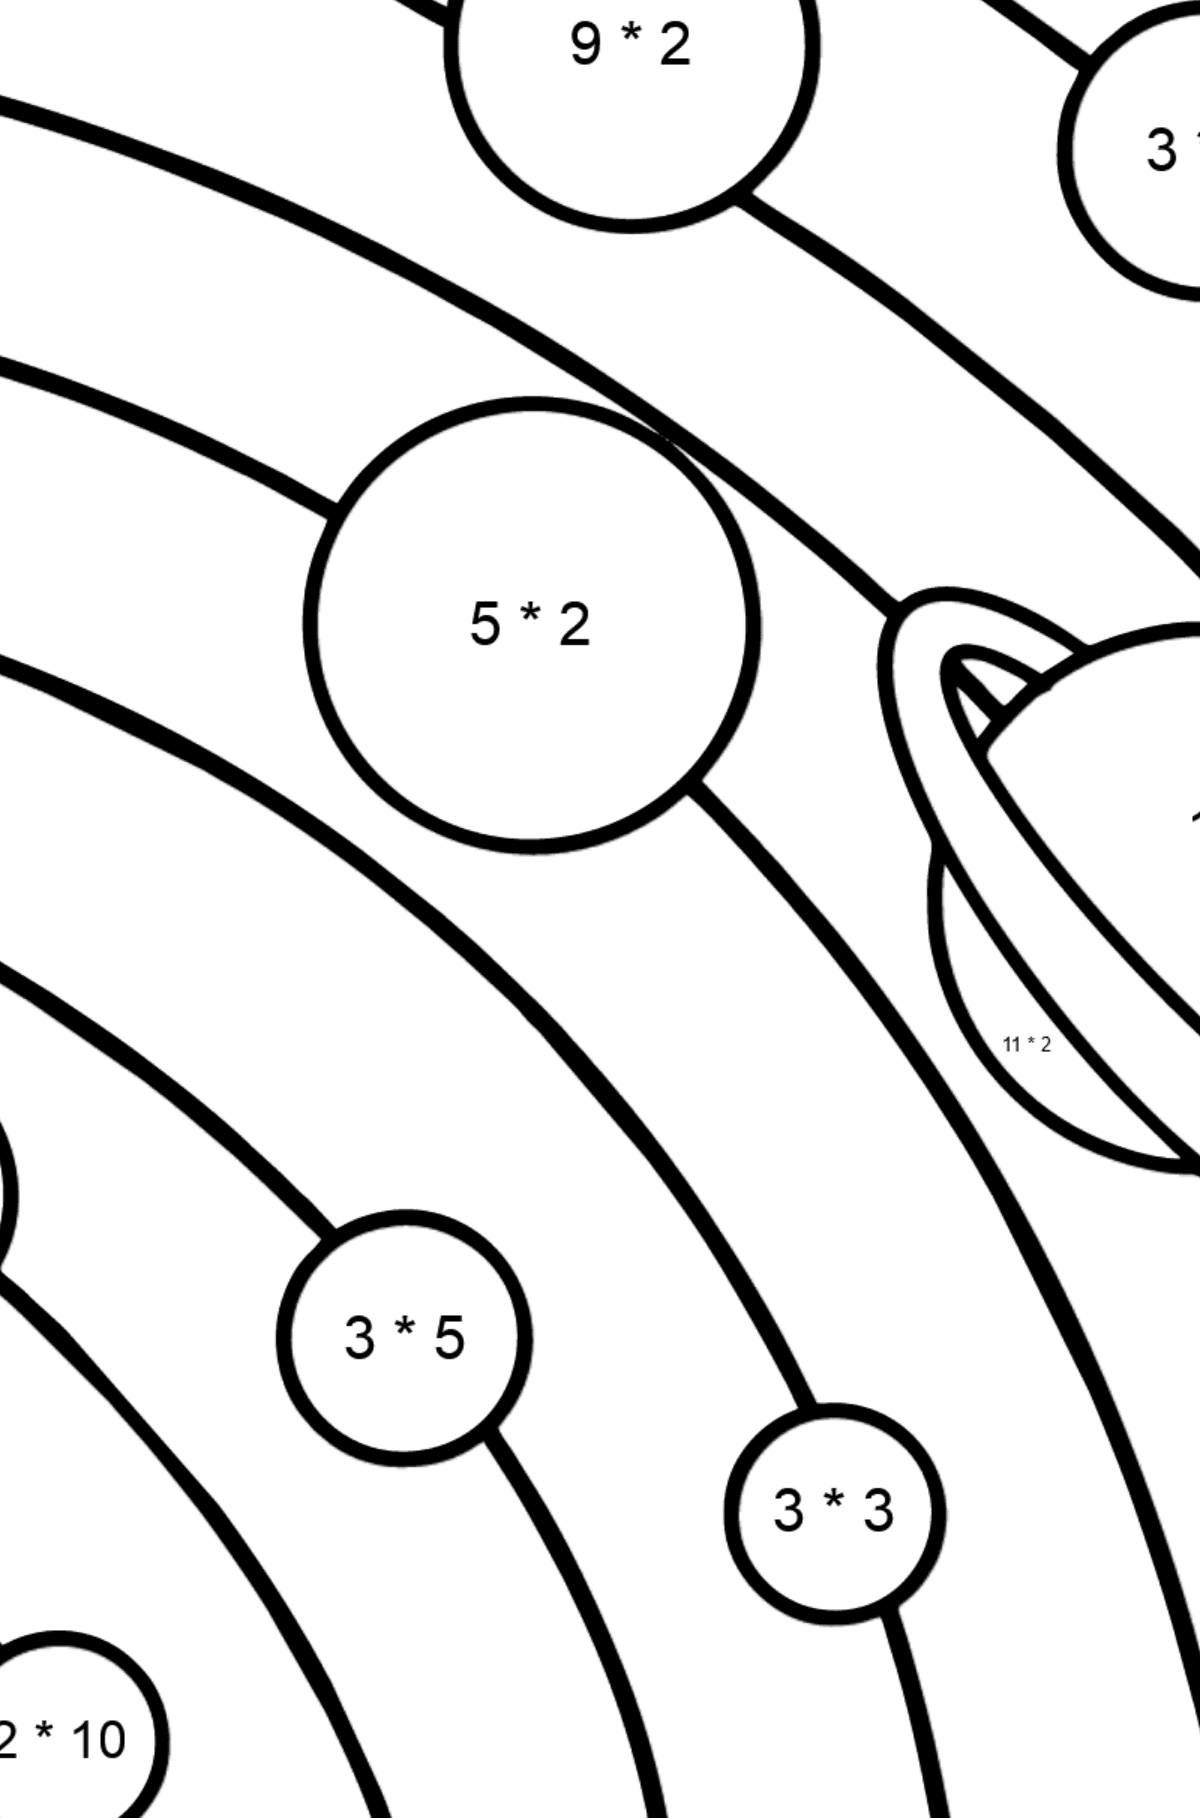 Solar System - Simple coloring page - Math Coloring - Multiplication for Kids